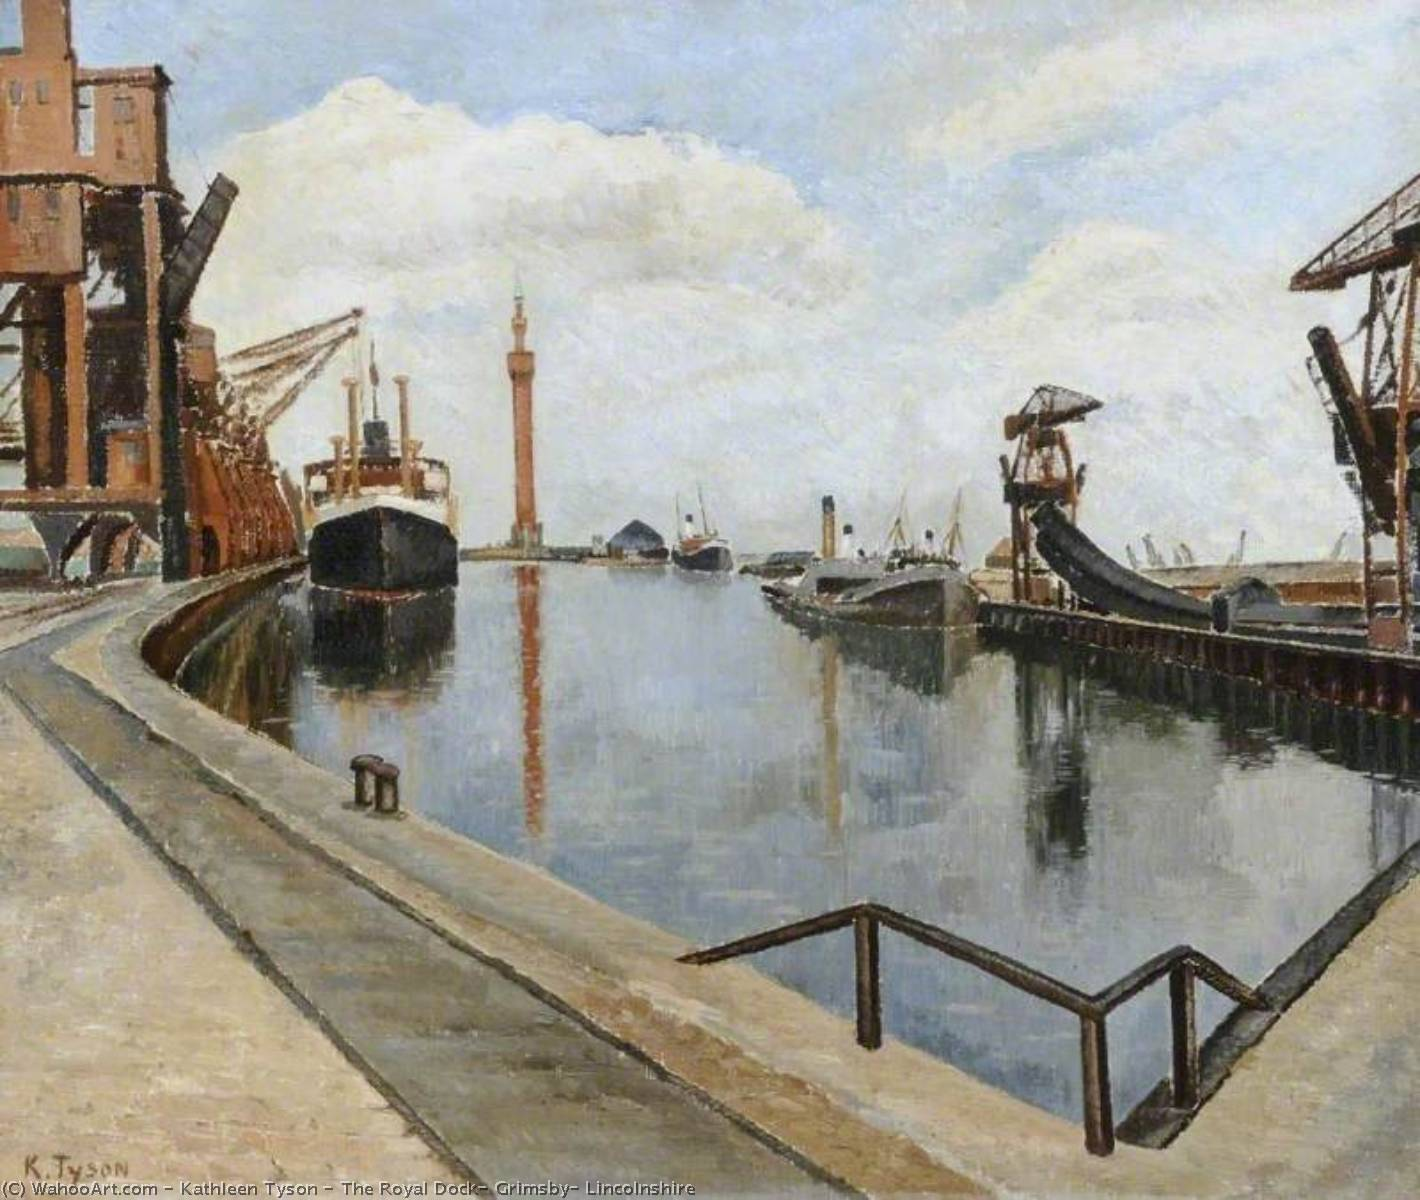 The Royal Dock, Grimsby, Lincolnshire, Oil On Canvas by Kathleen Tyson